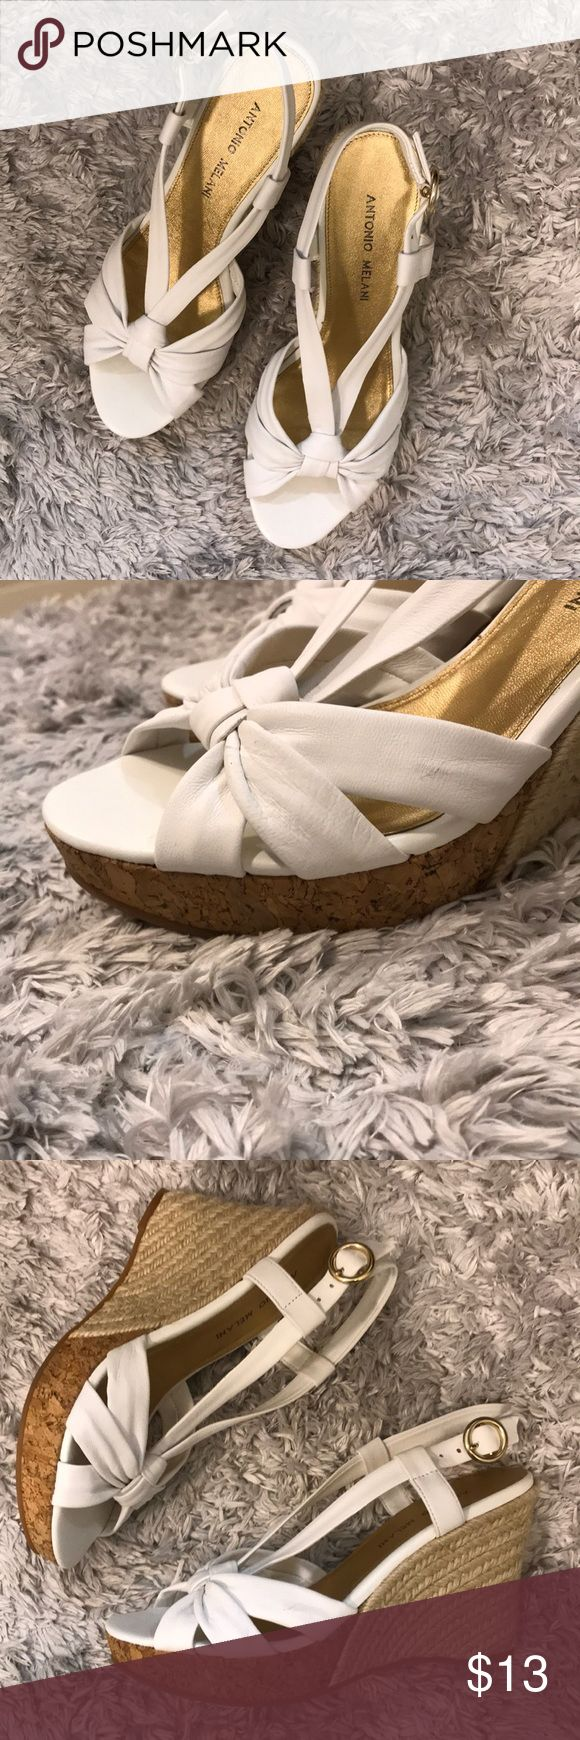 Antonio Melanie White Wedge Heels Antonio Melani white wedge slingback style heels. Perfect for summer!  Size 8M Worn Once, gently used, super comfy!   4inch heel with 1 inch lift in the toe area ANTONIO MELANI Shoes Wedges